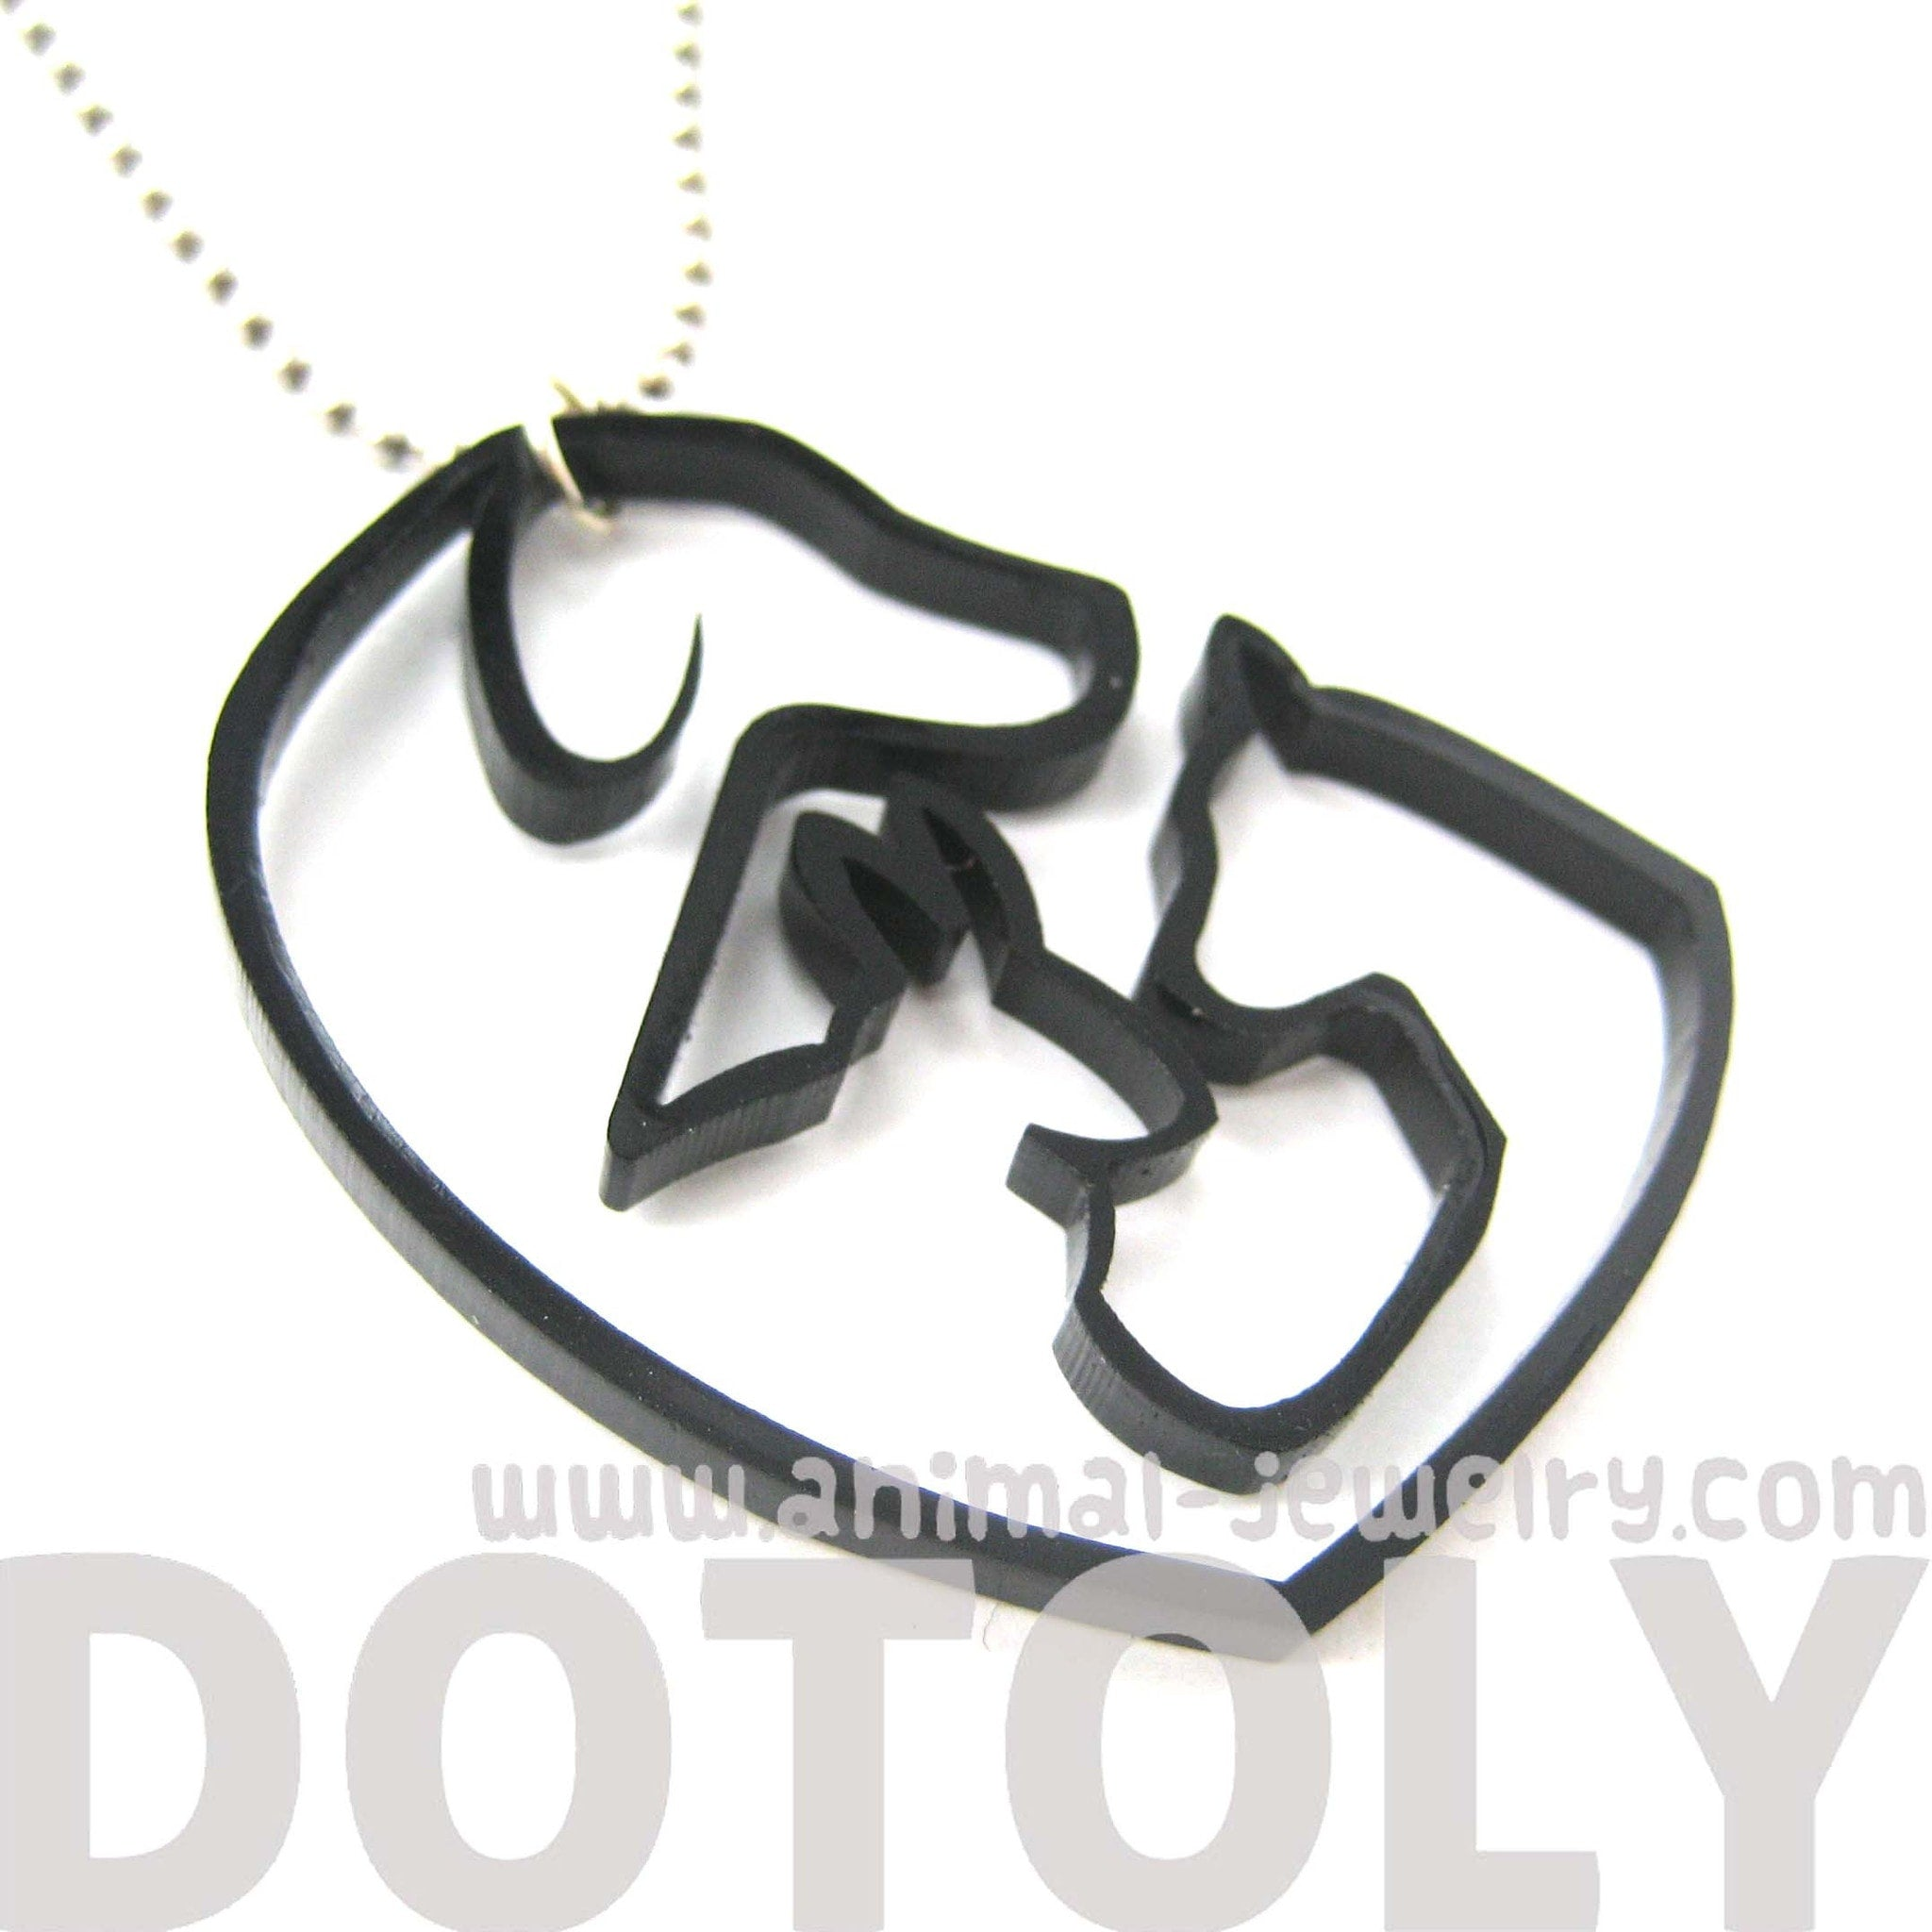 Kitty Cat, Dog and Bunny Silhouette Shaped Pet Animal Themed Necklace in Black Acrylic